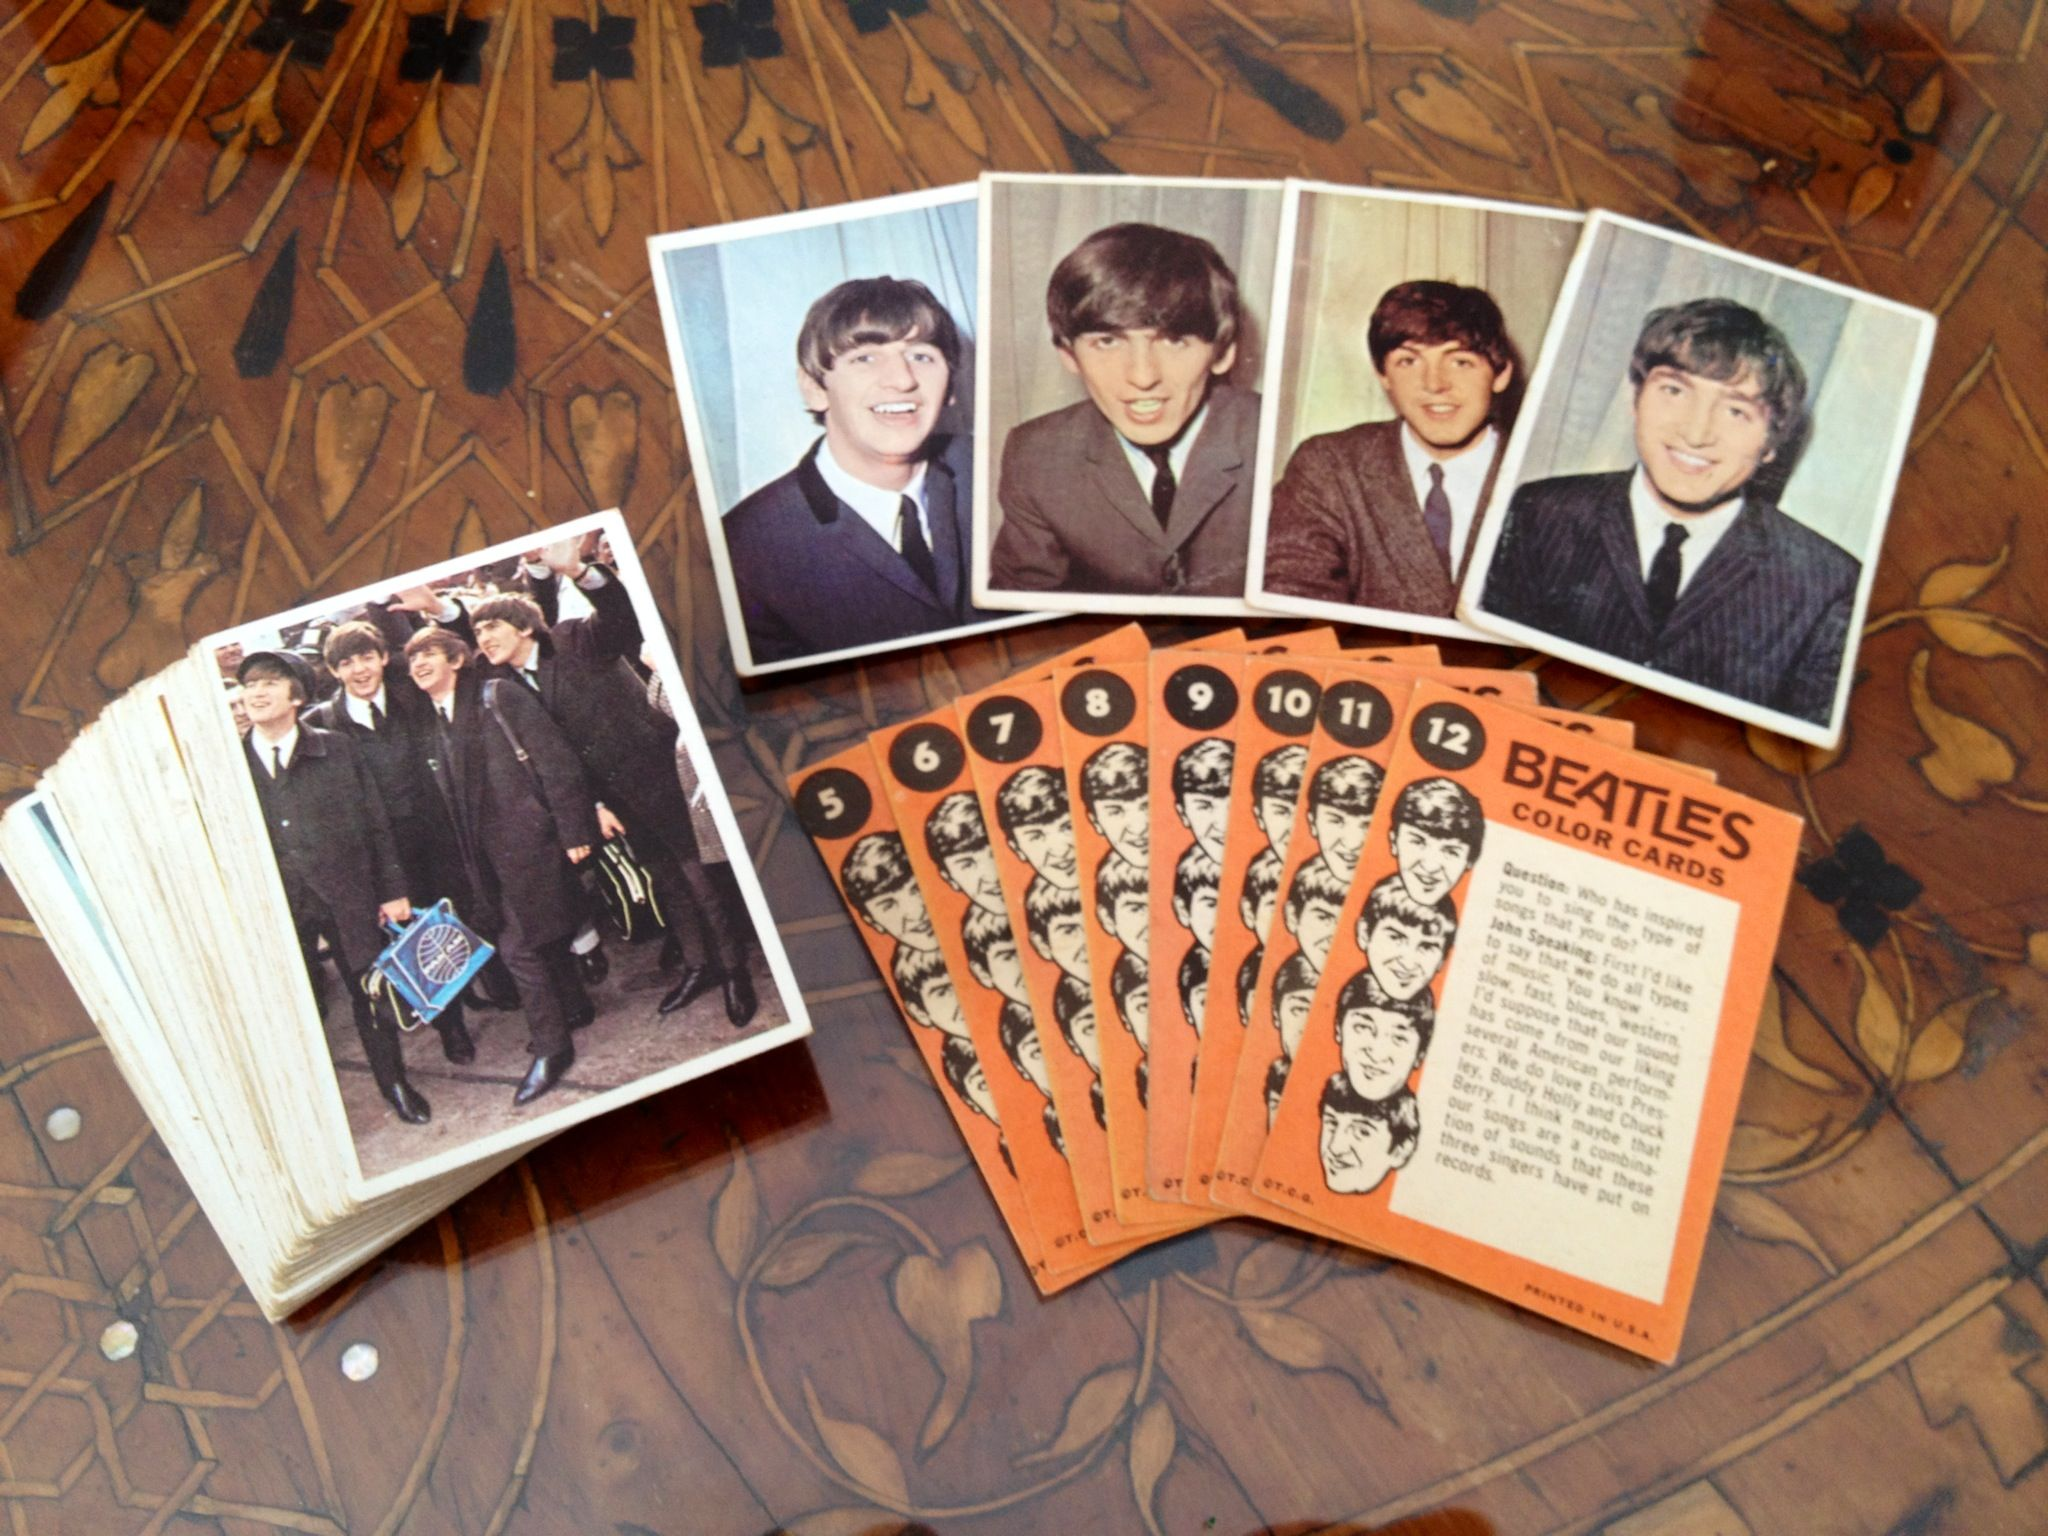 cd31cbbdb36 THE BEATLES TRADING CARDS. BOY DID I HAVE A LOT OF THESE. WISH I KNEW WHERE  THEY ALL WENT.